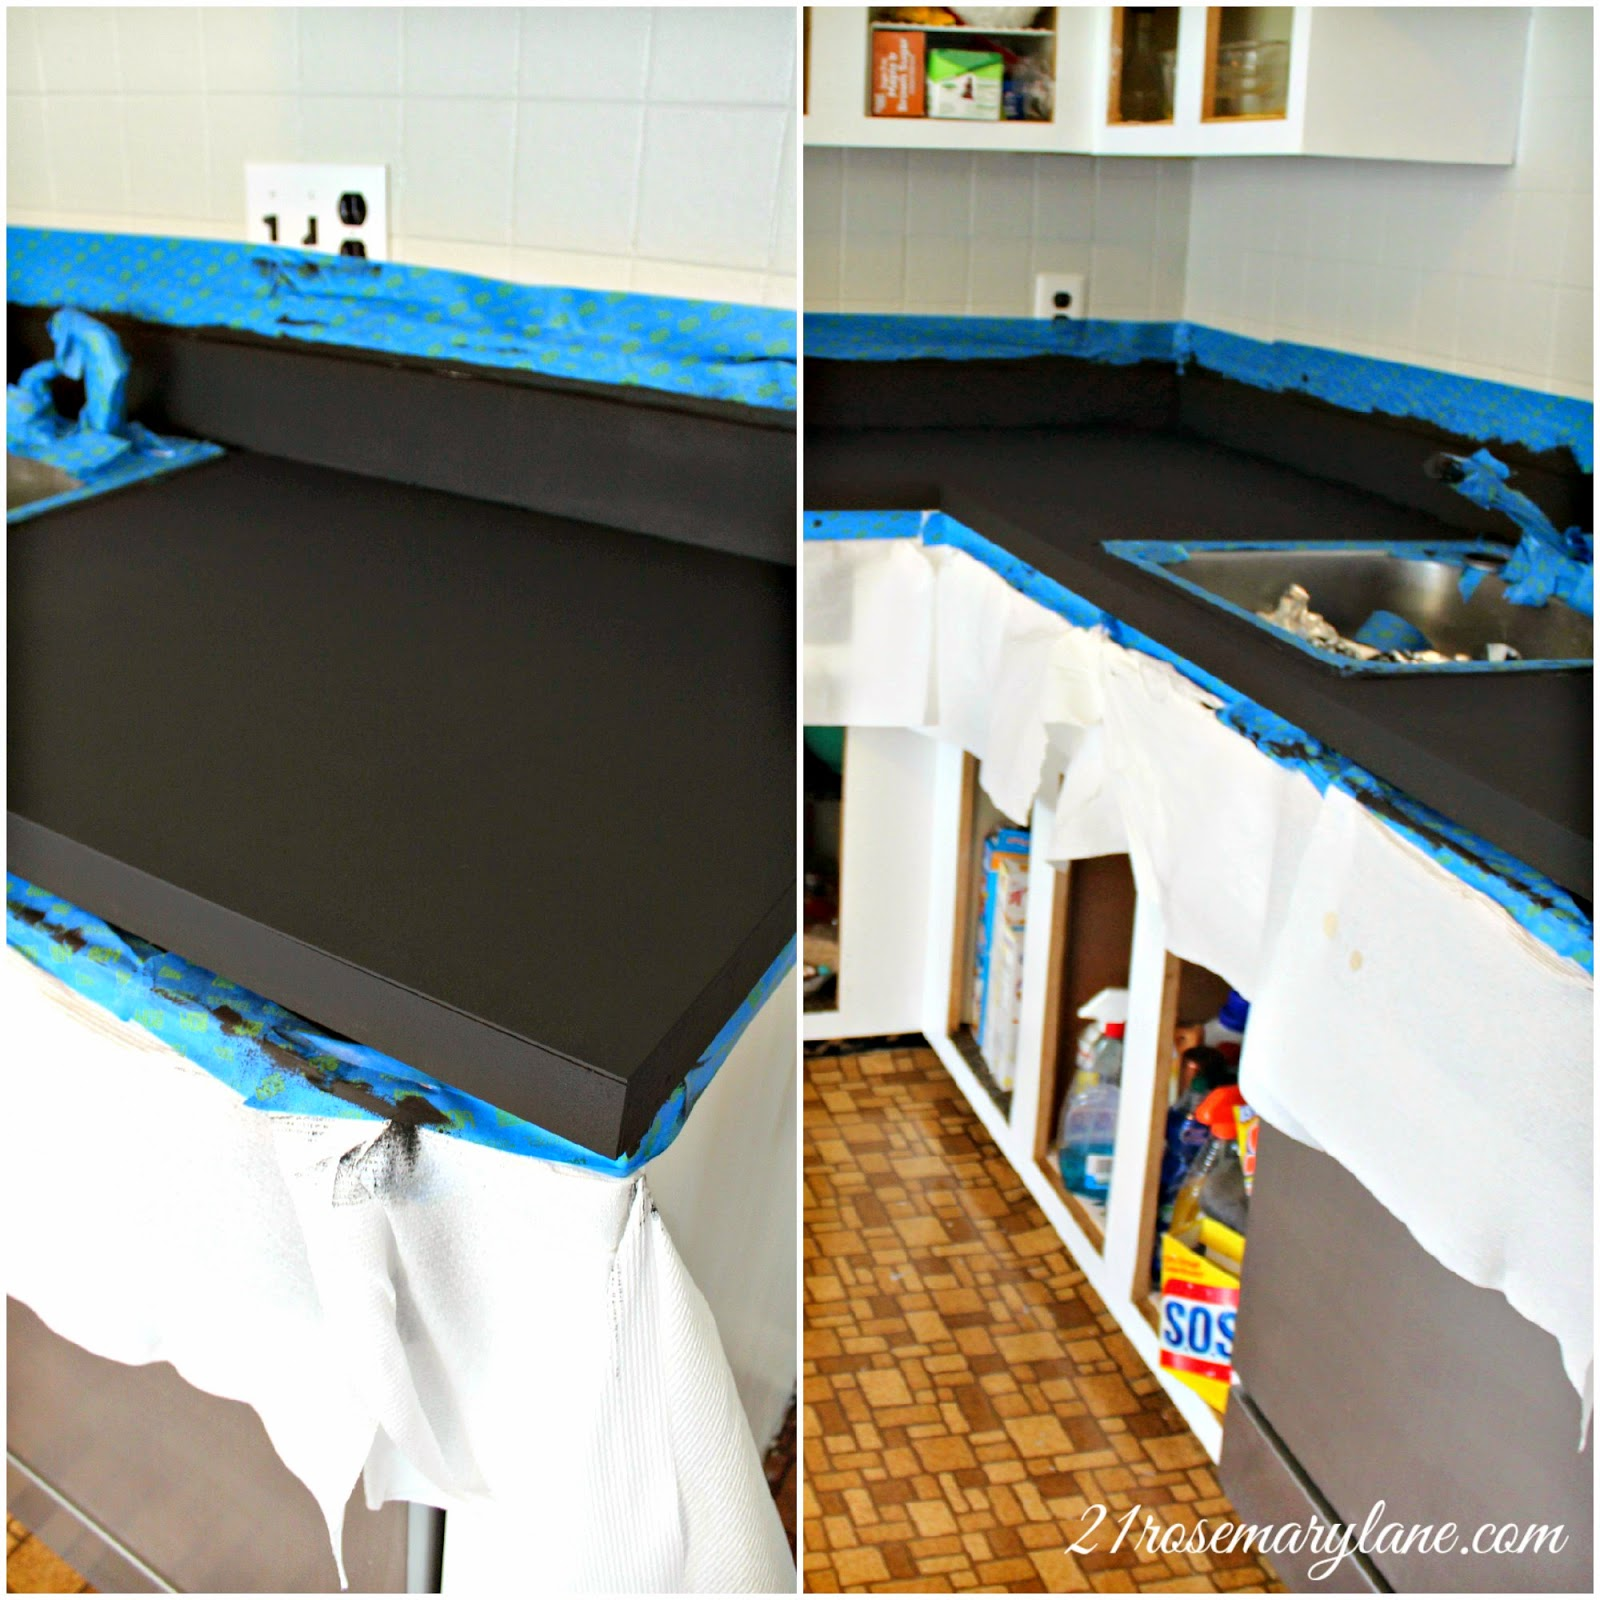 Cleaning Formica Countertops 21 Rosemary Lane Transformation Of A 1970 S Formica Countertop